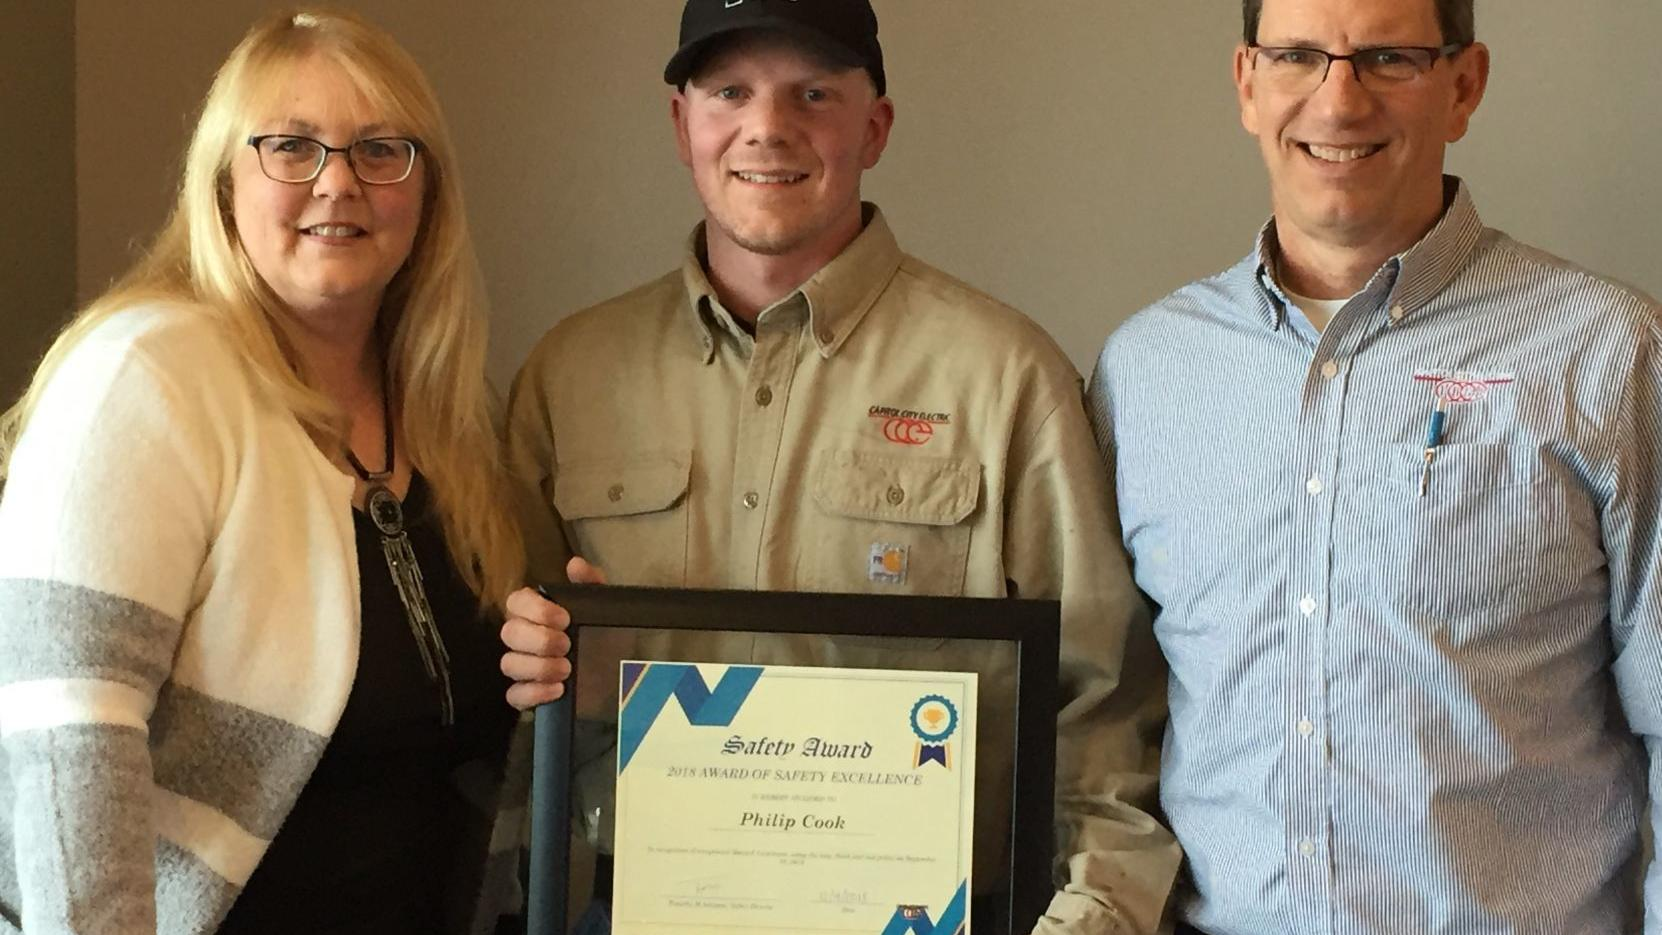 Local man recognized for reporting safety hazard at Iowa fertilizer plant